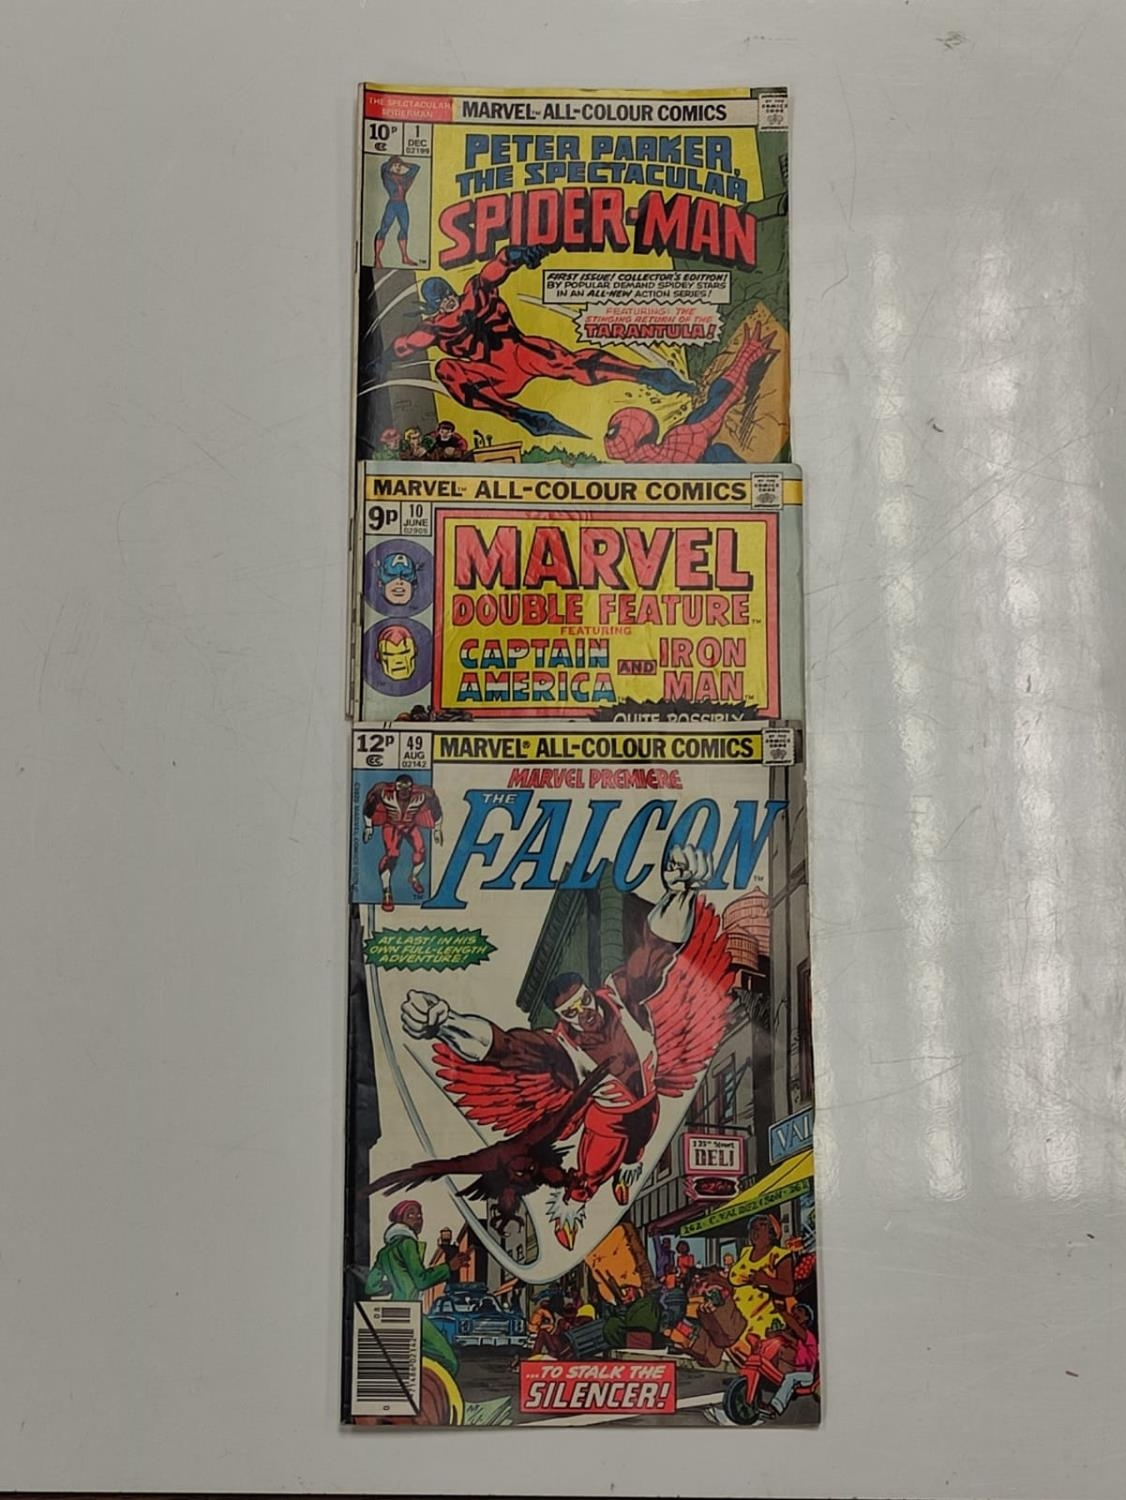 3 Eclectic Vintage Marvel Comics, including the rare 'Peter Parker, The Spectacular Spider-Man'. - Image 2 of 8